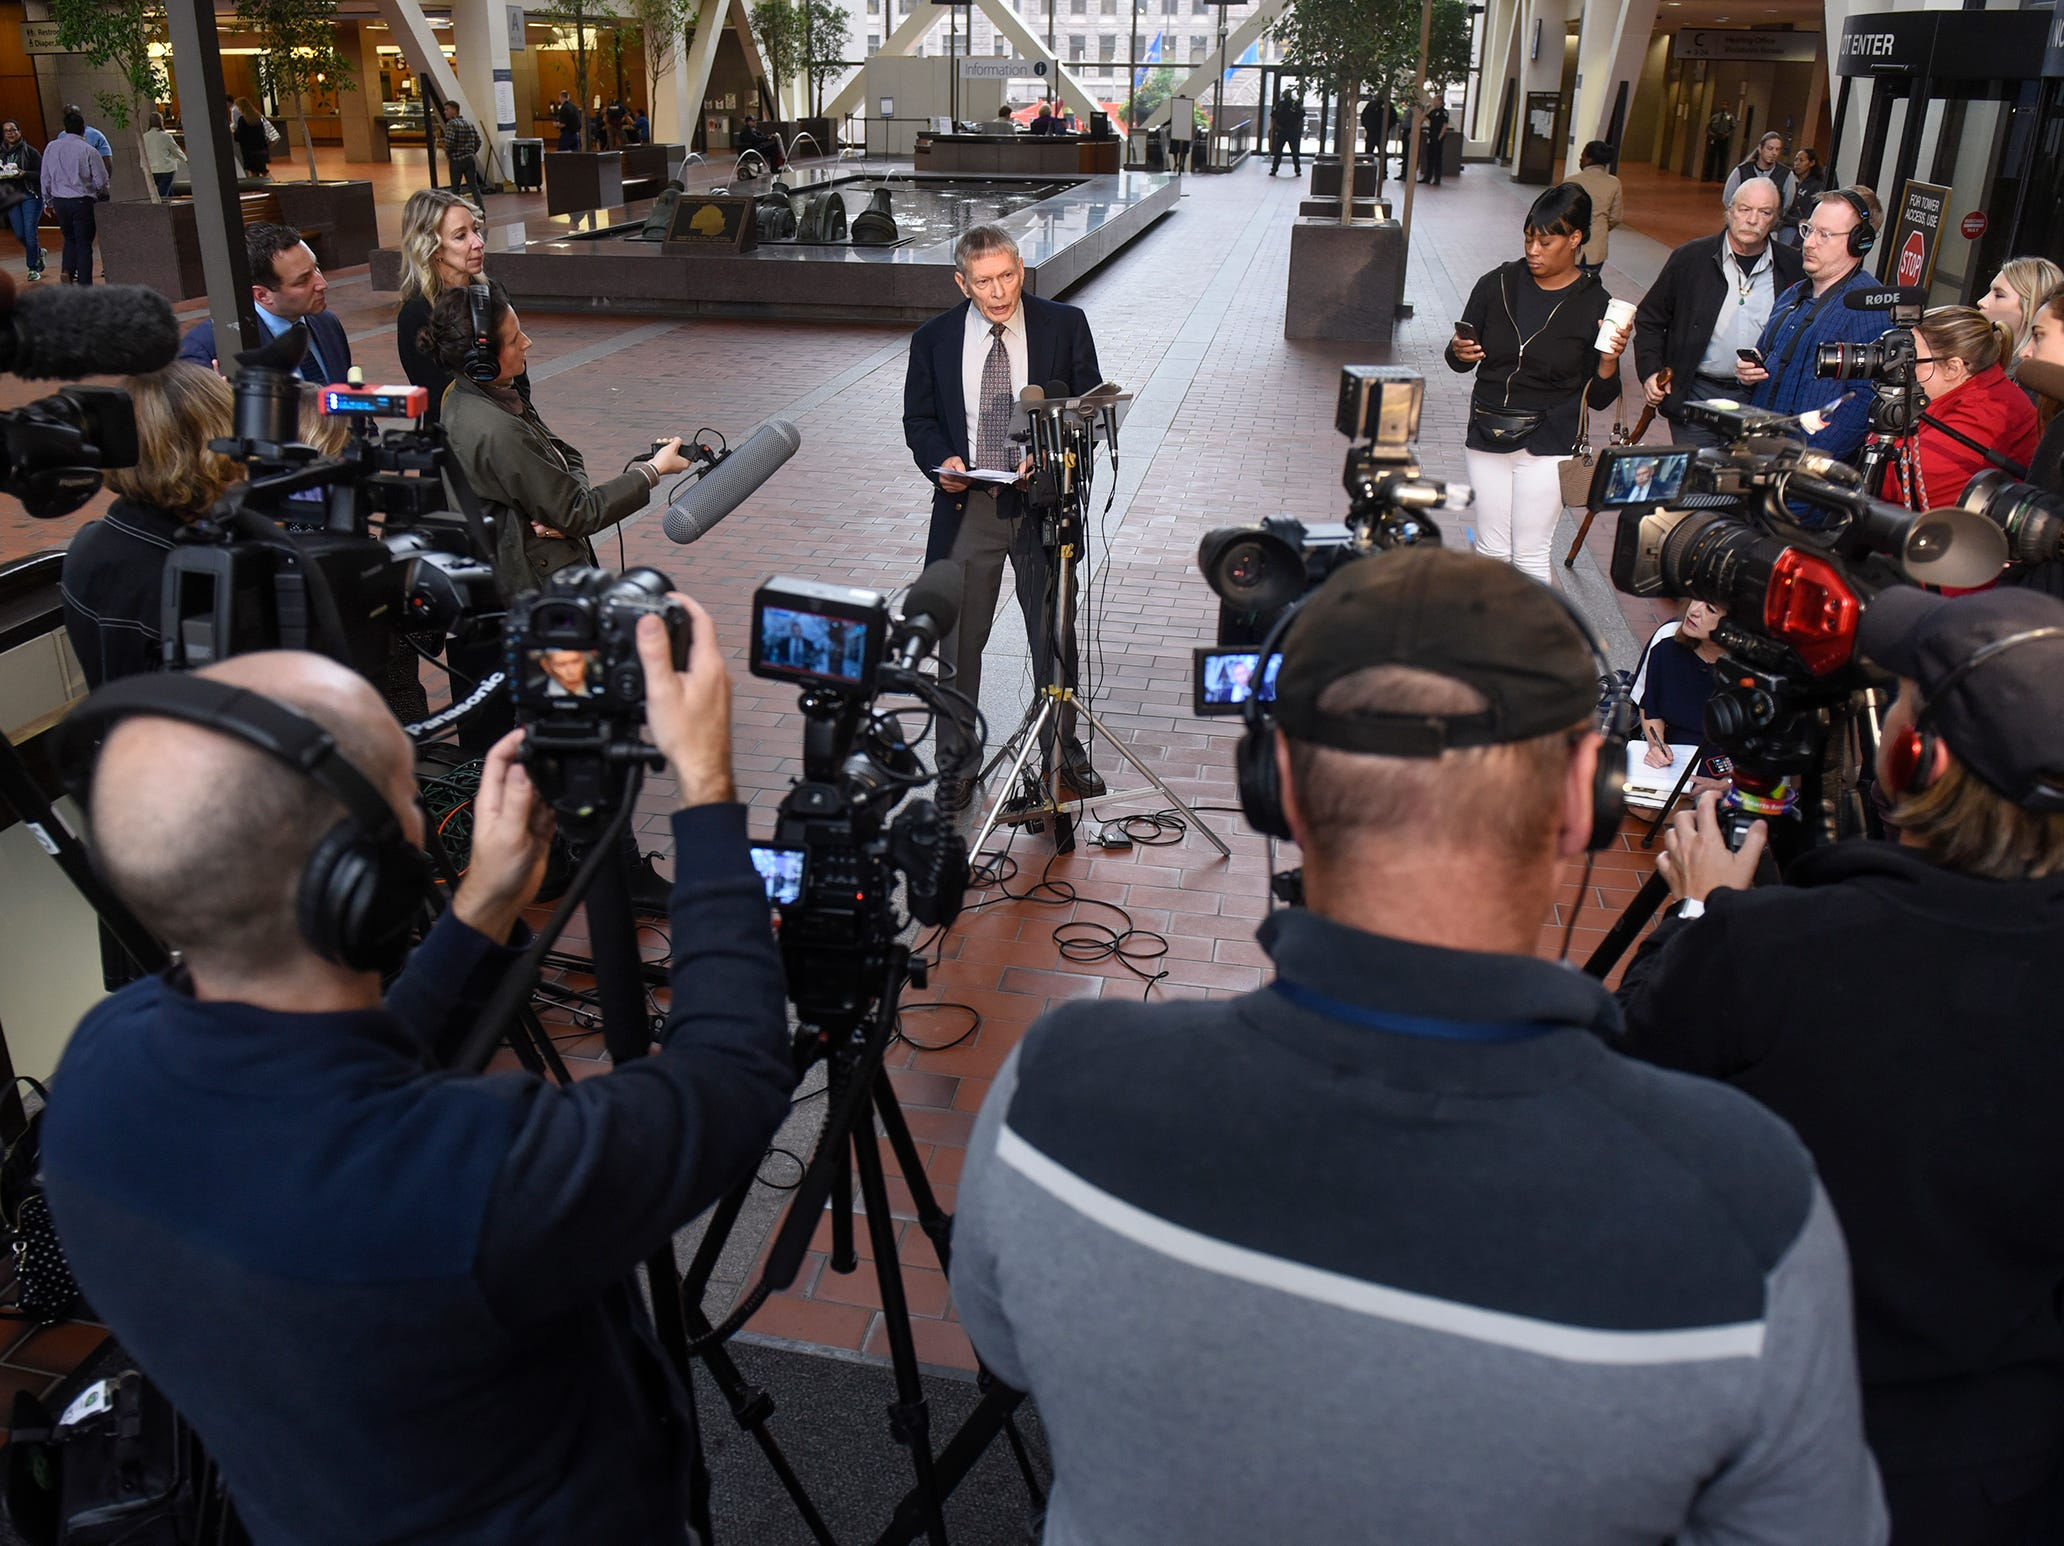 Former FBI agent Steve Gilkerson is surrounded by media members during a press conference Tuesday, Oct. 2, at the Hennepin County Government Center in Minneapolis.